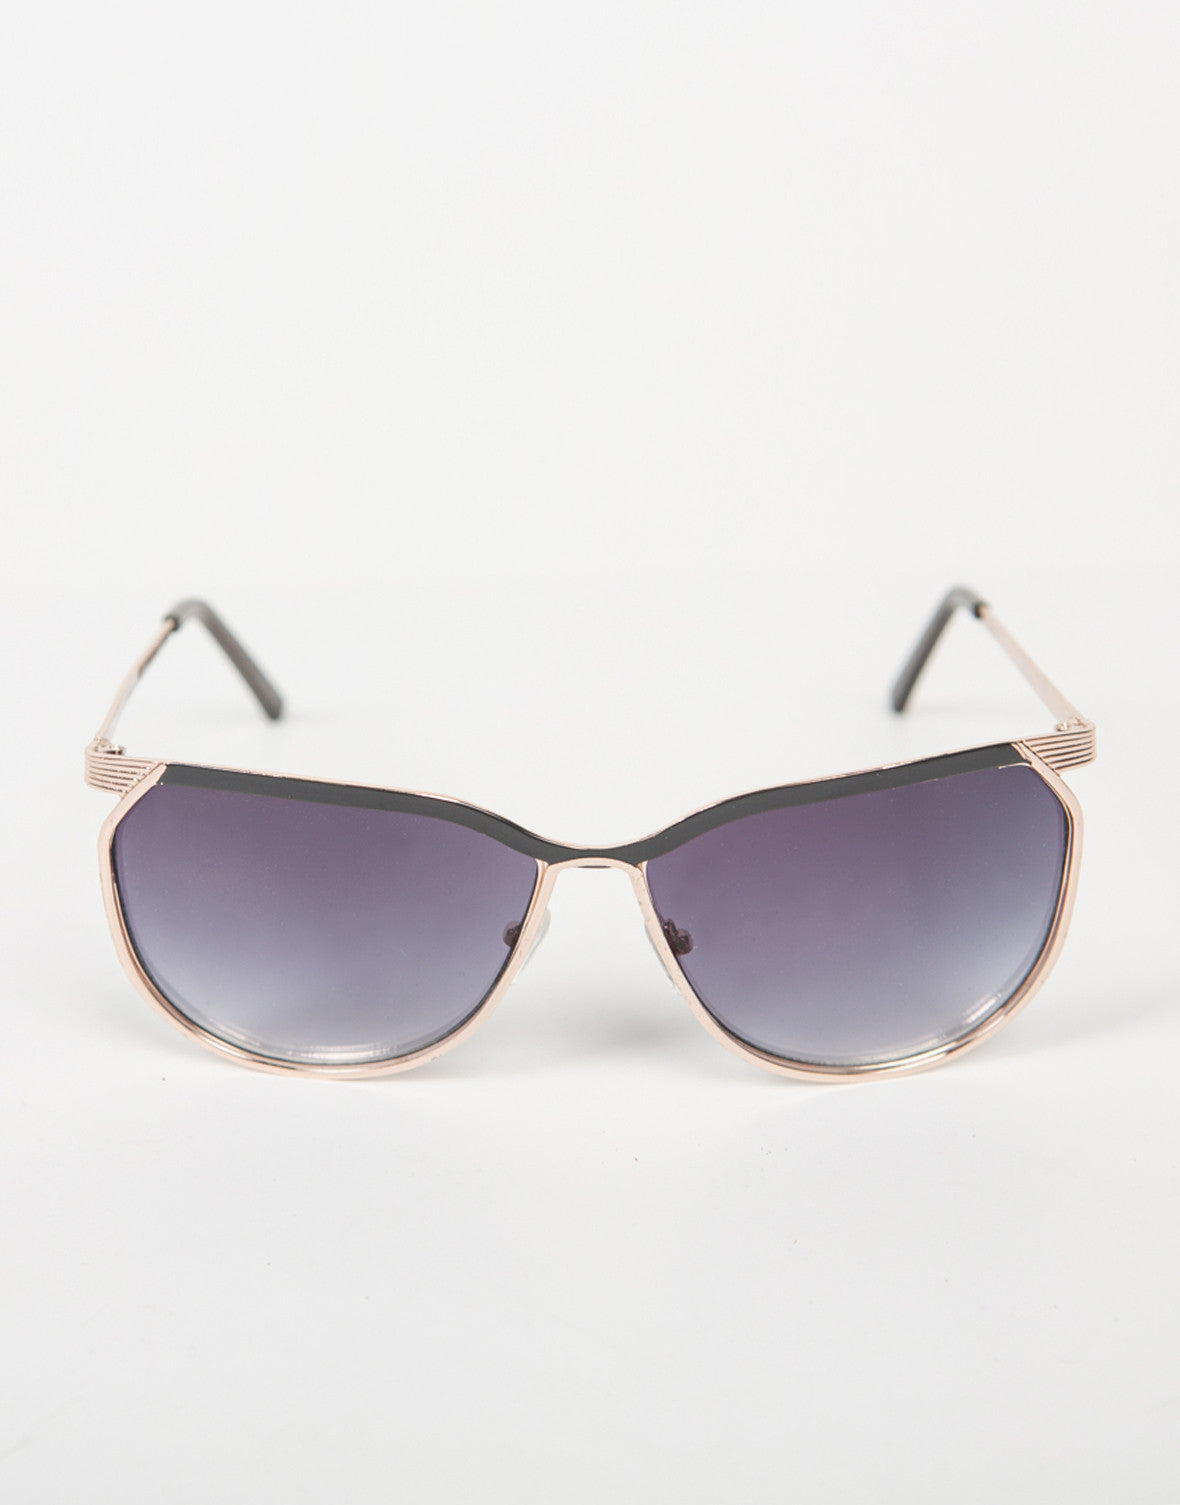 Front View of Oversized Vintage Pilot Sunnies